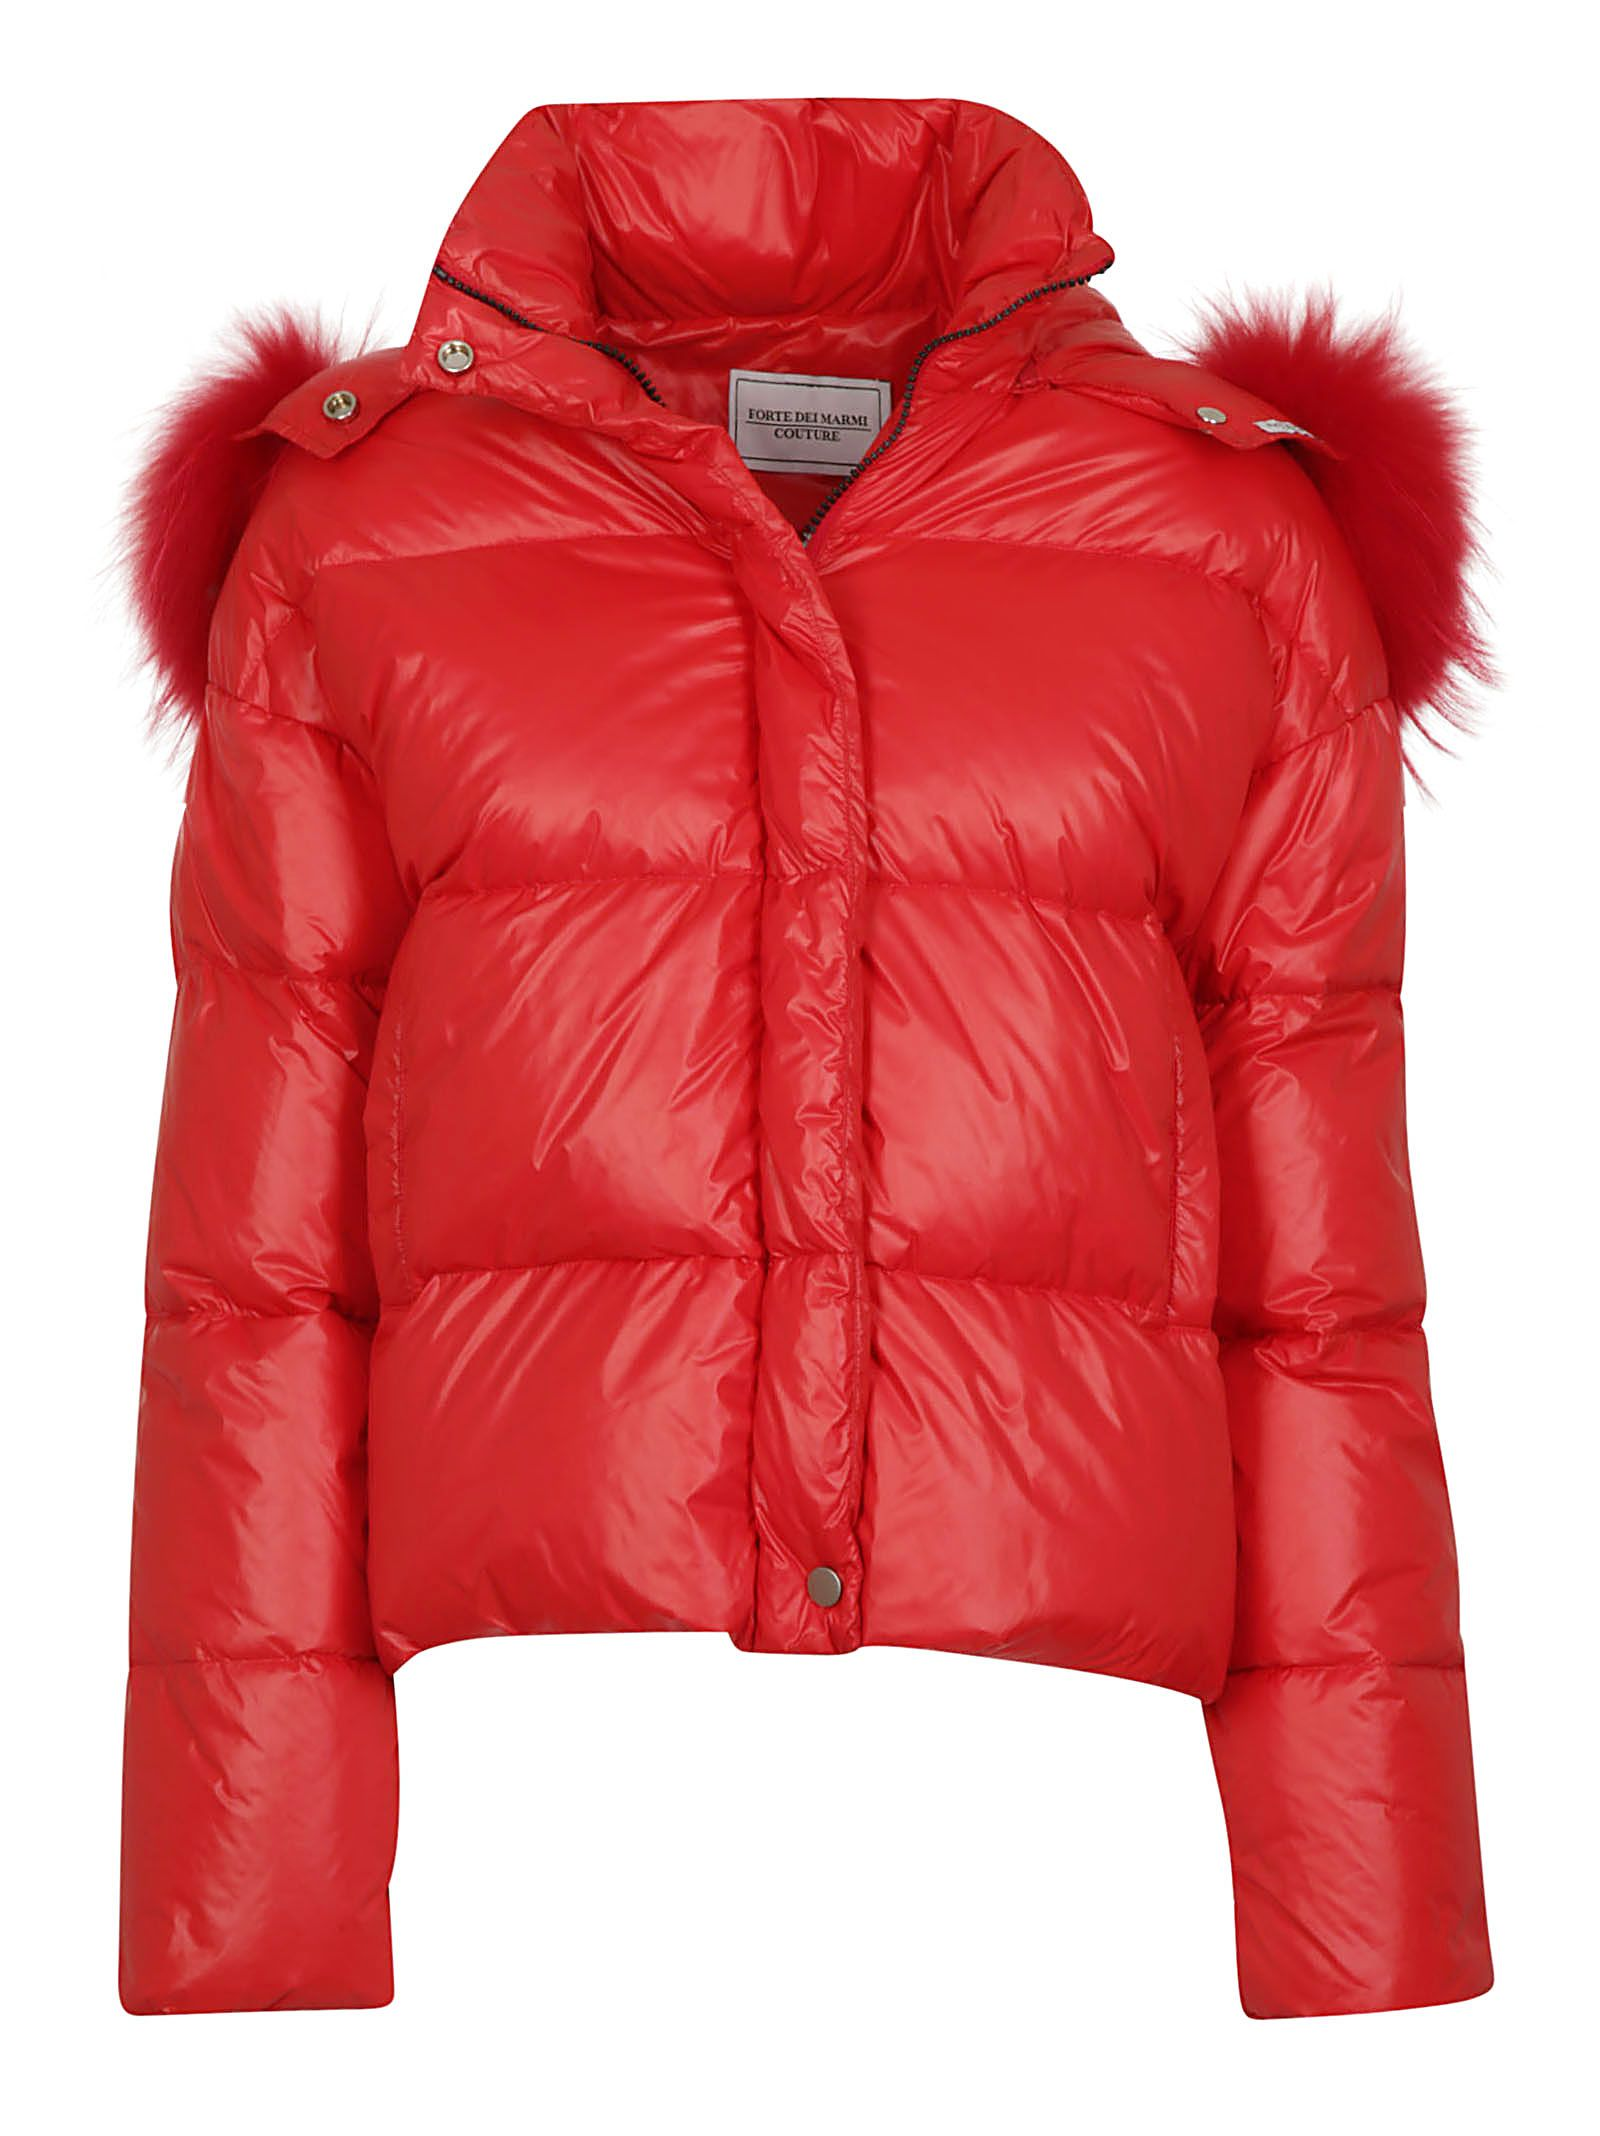 FORTE COUTURE Forte Dei Marmi Couture Fur Trim Padded Jacket in Red